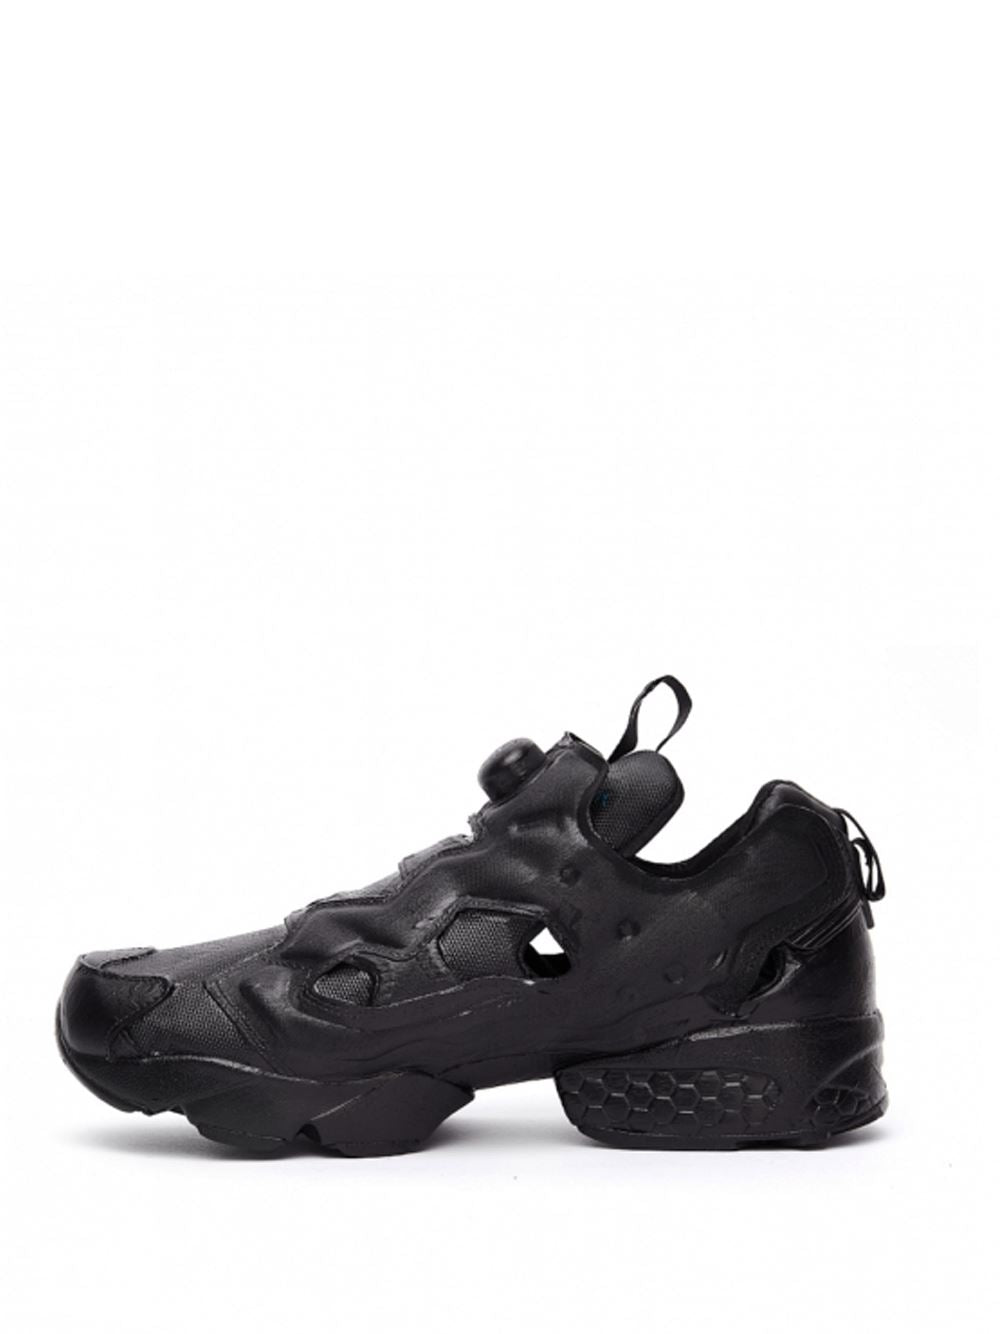 VETEMENTS Reebok Hand Painted Pump Black - Maison De Fashion